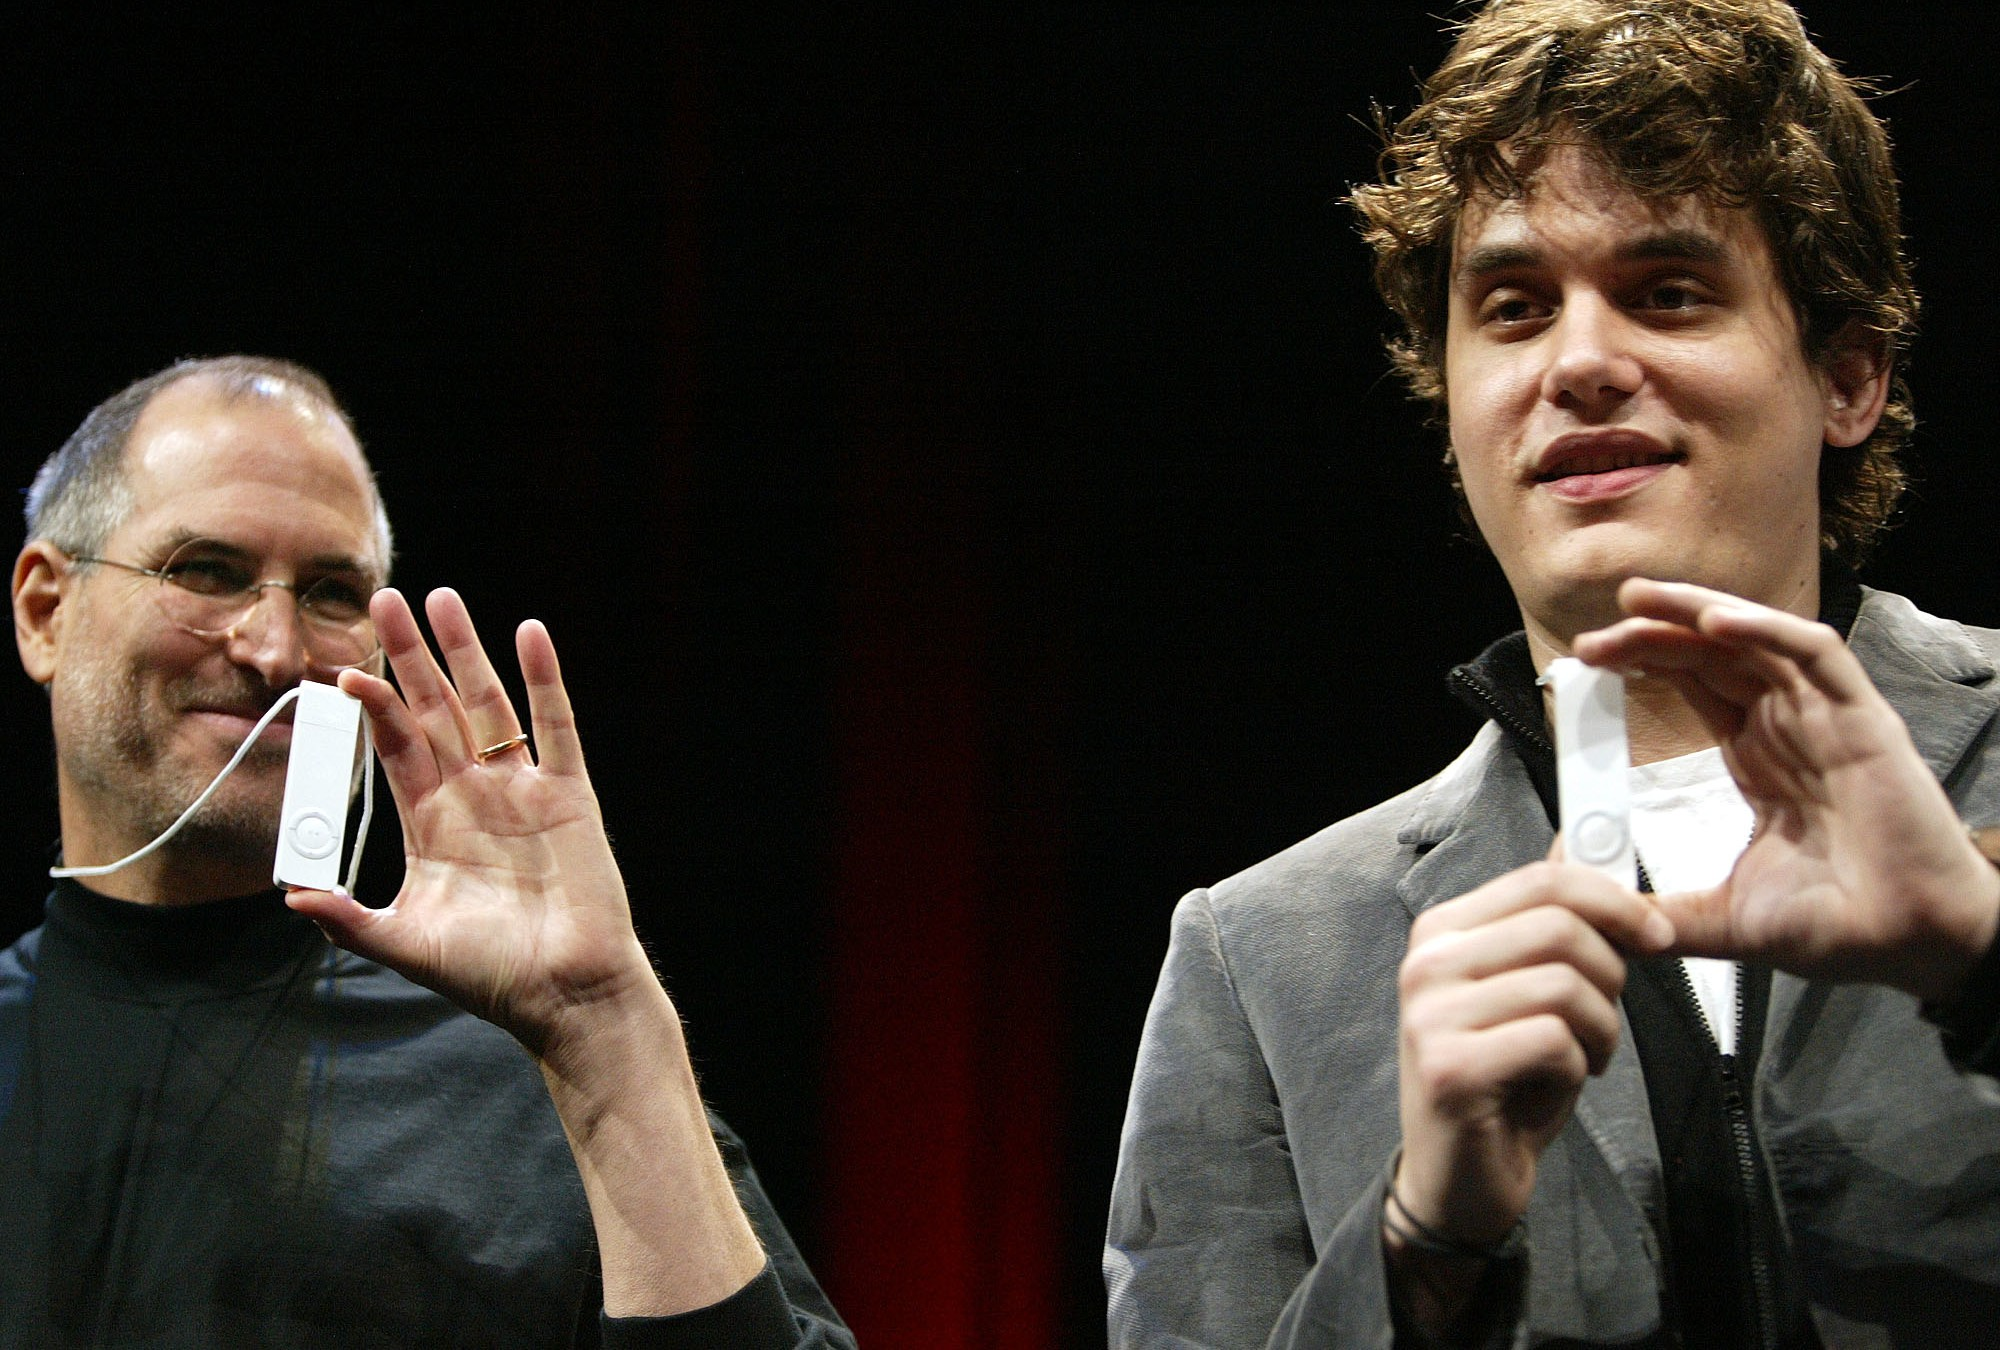 Apple CEO Steve Jobs and musician John Mayer at Macworld 2005